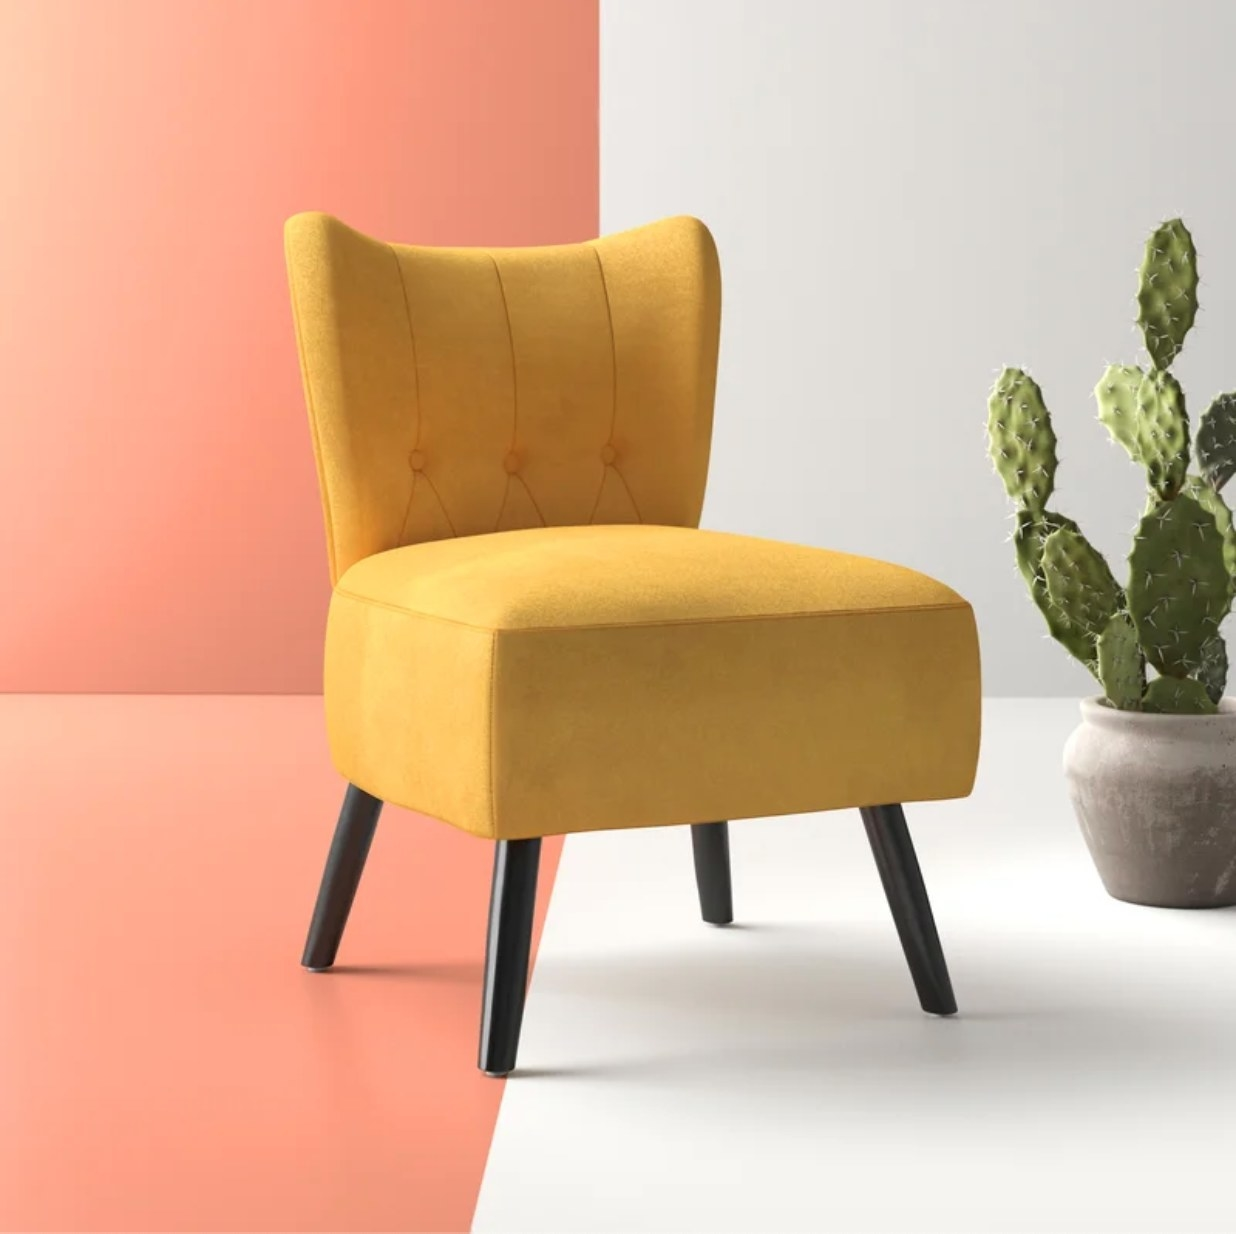 The yellow accent chair